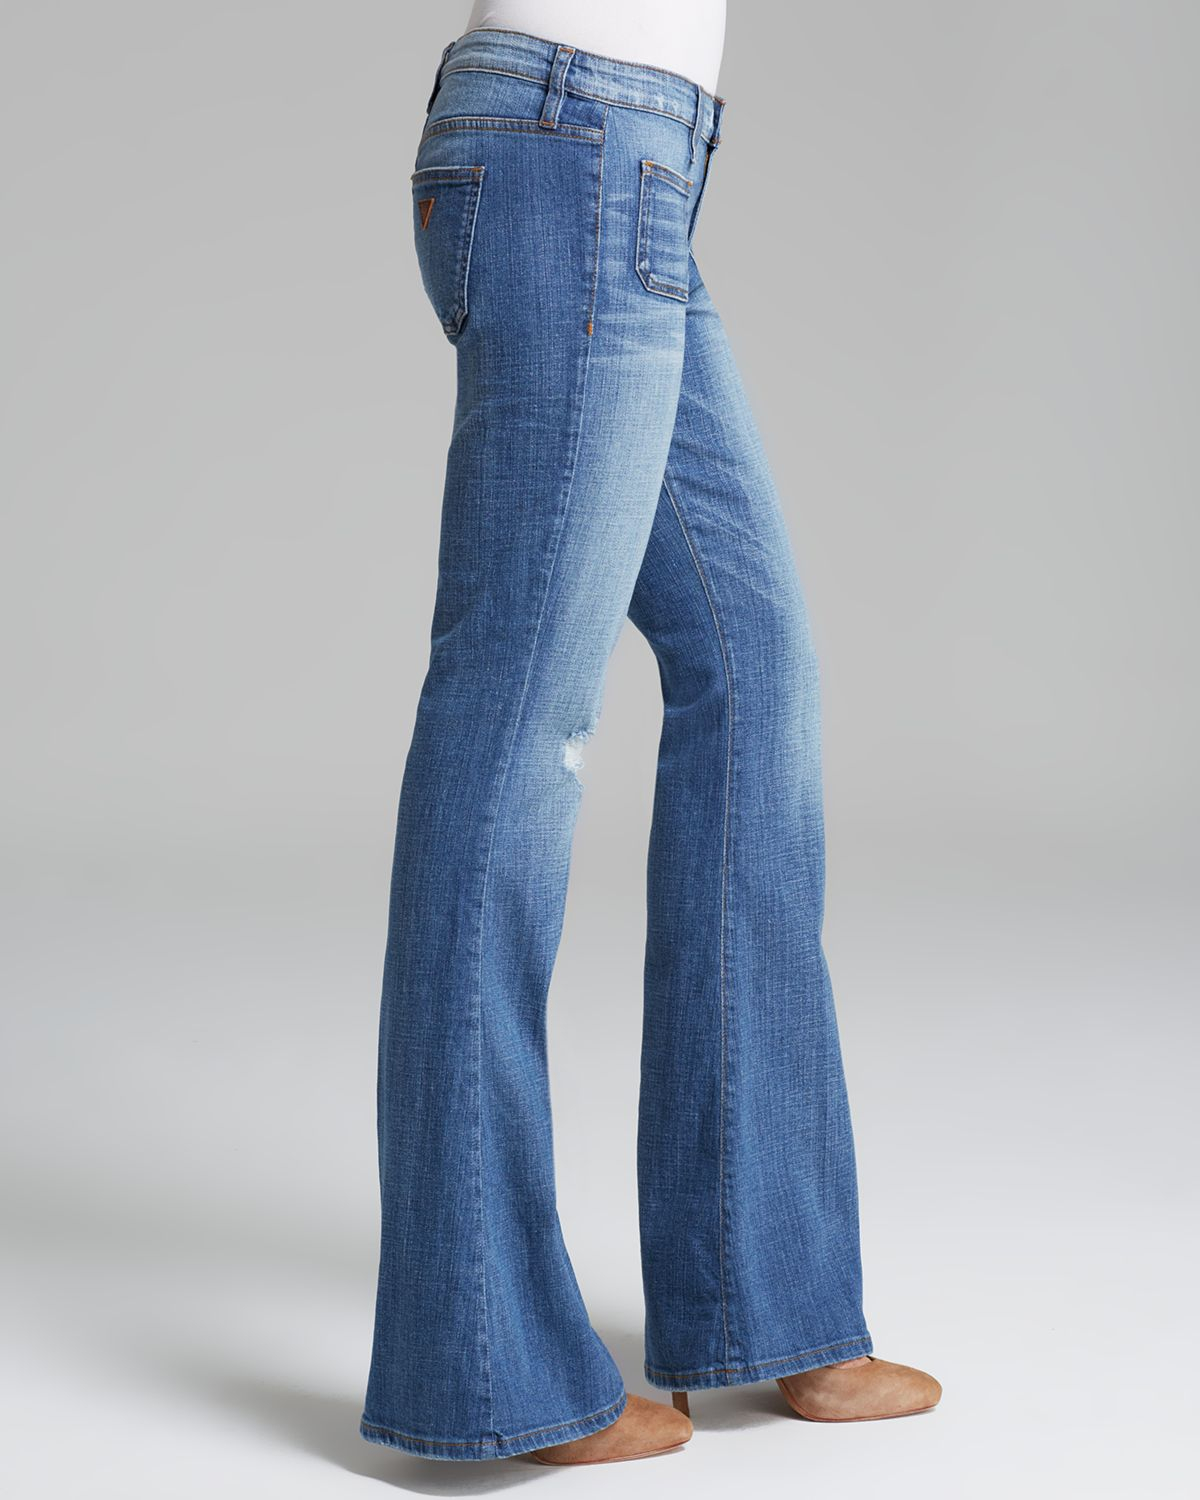 Guess Jeans 70s Flare in Rossen Wash in Blue | Lyst